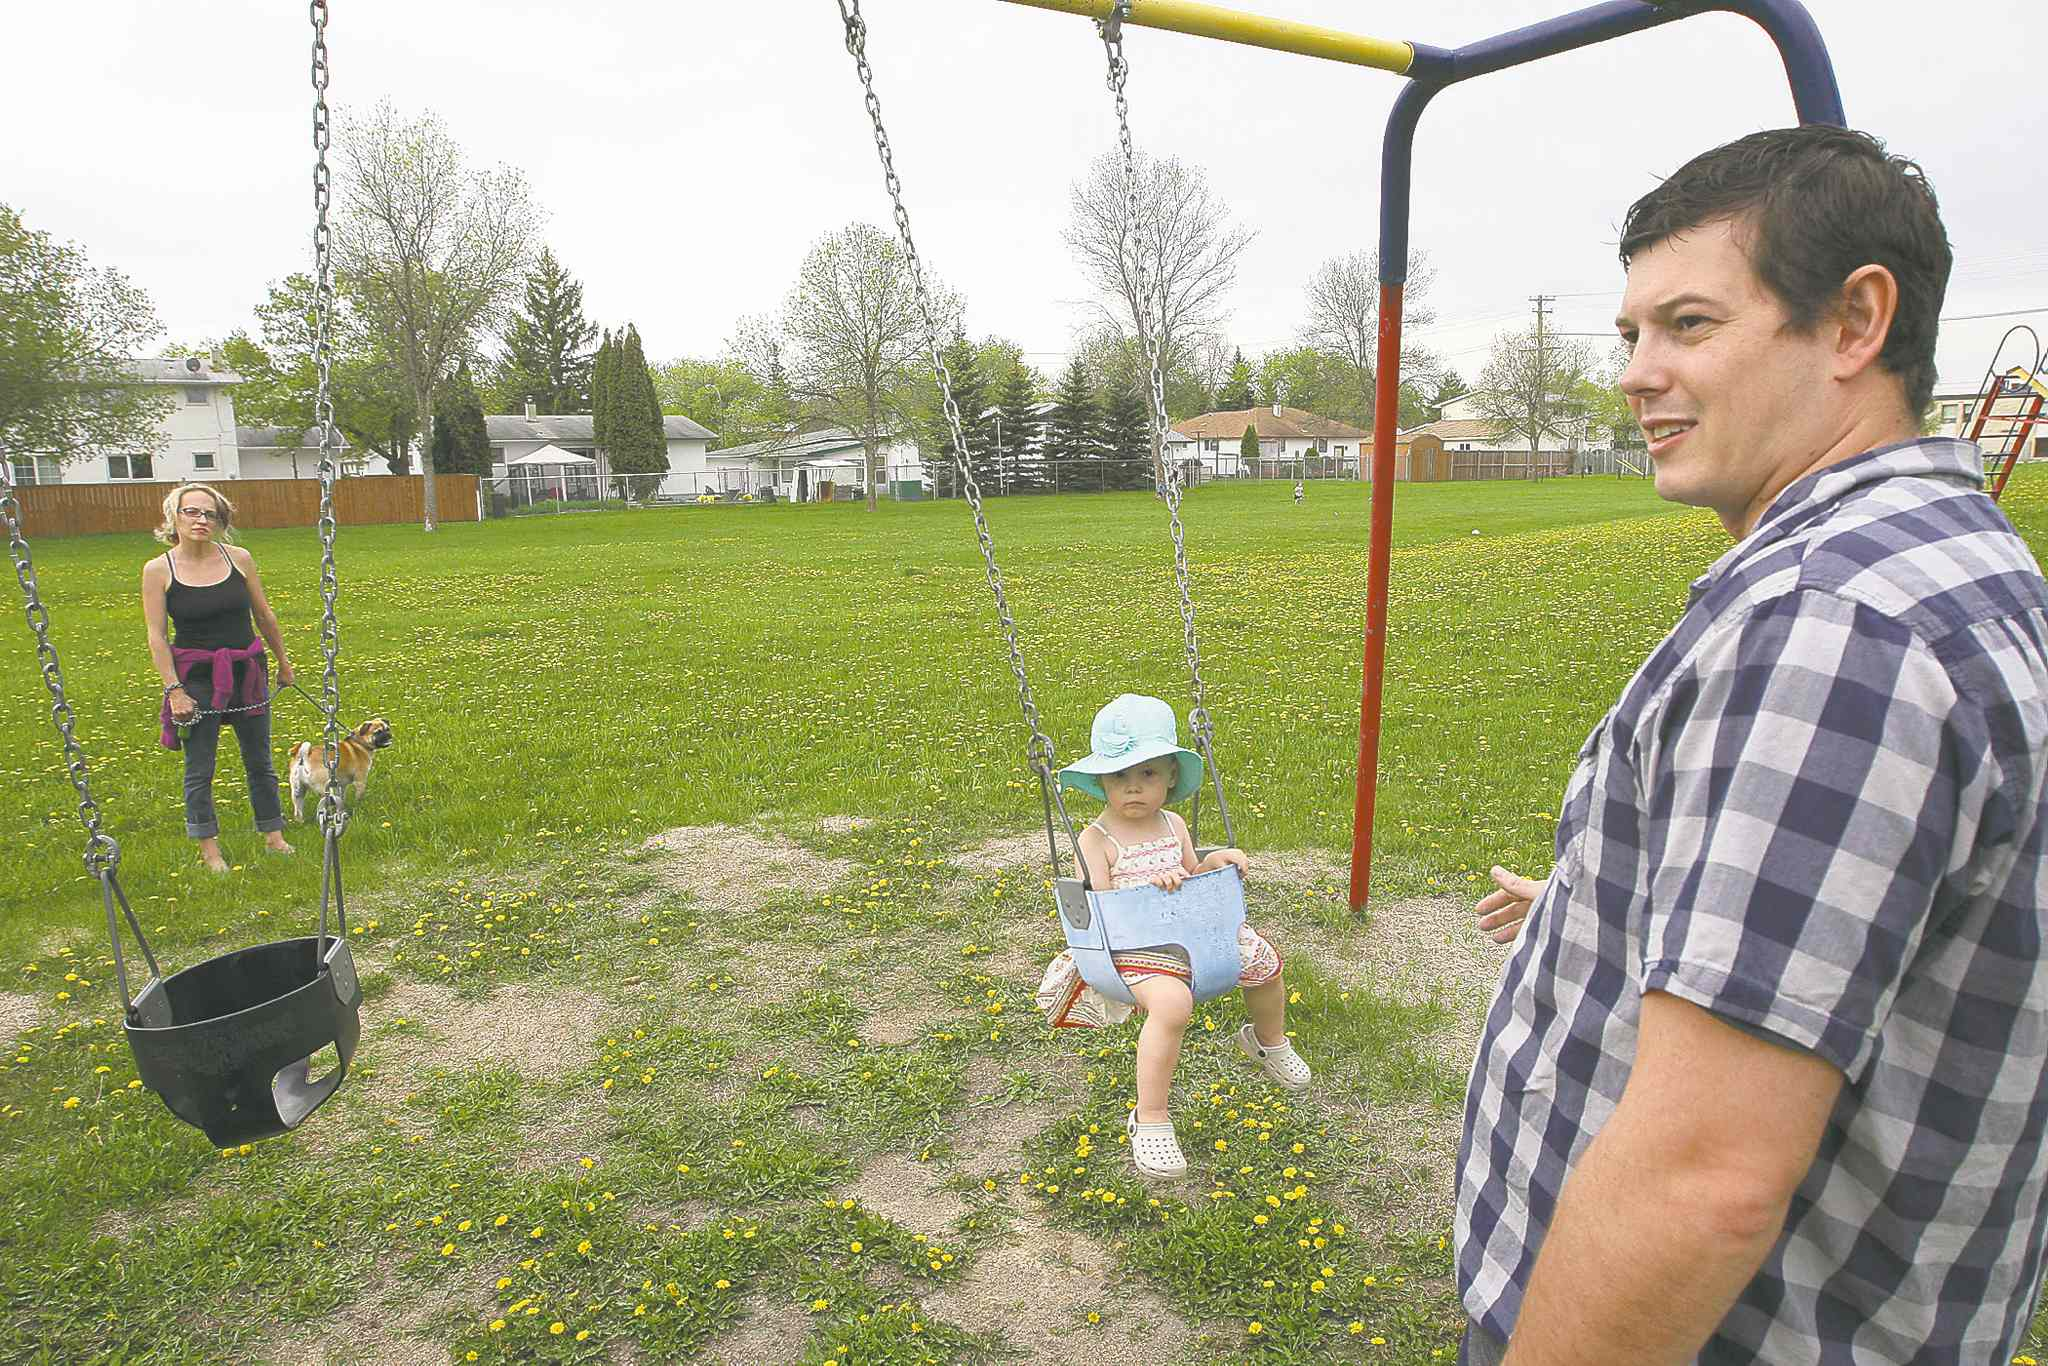 Dan Legge pushes his daughter, Audrey, on a swing in Voyageur Park on Thursday as he chats with neighbour Cindi Eastman.